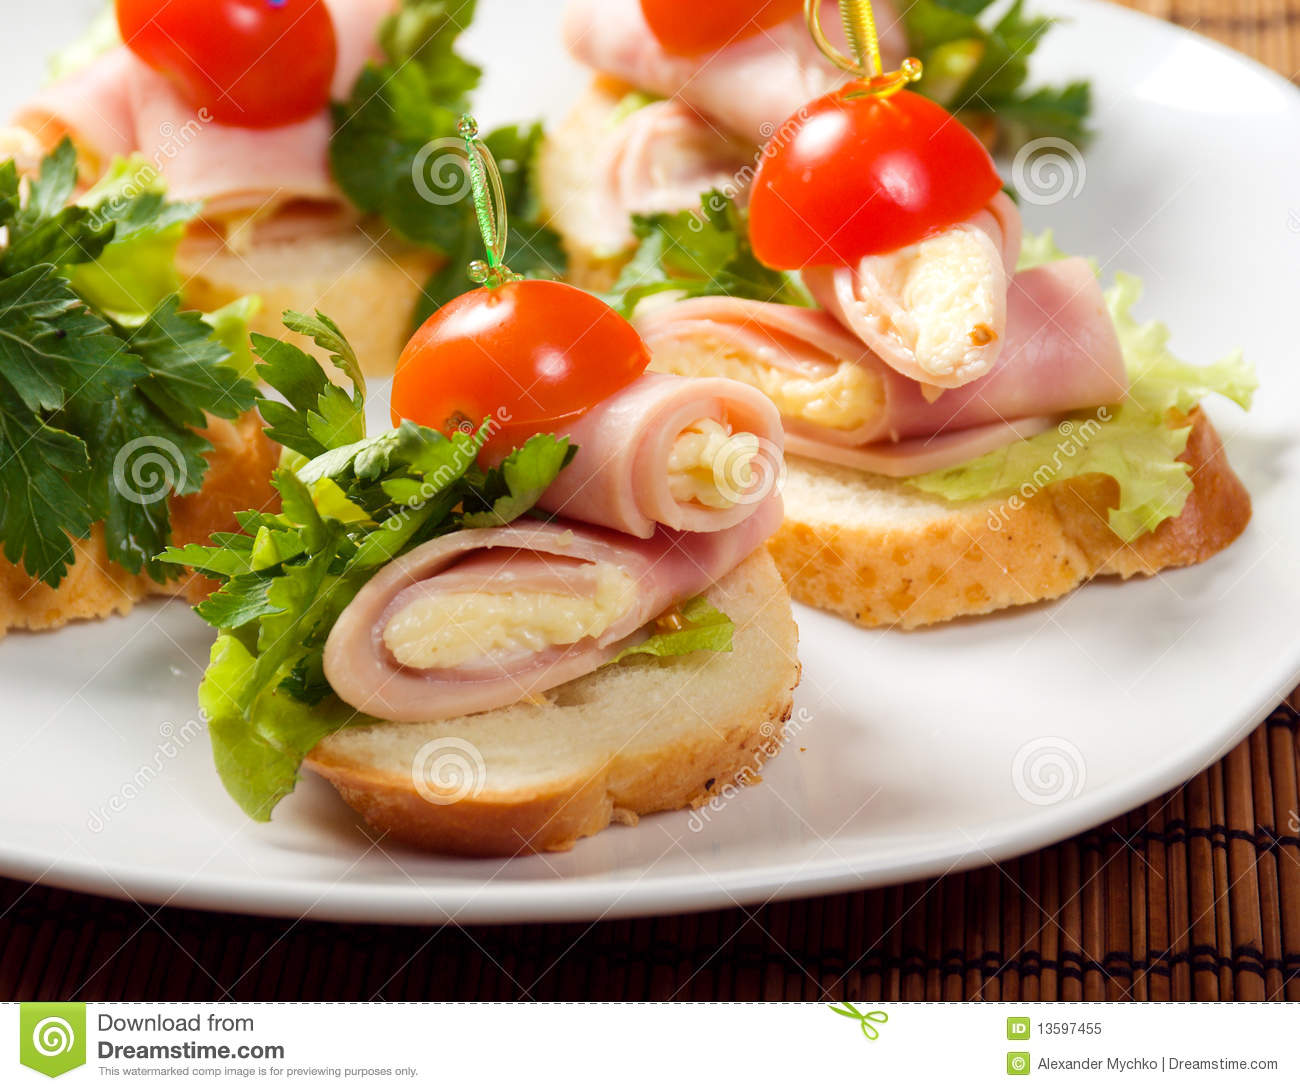 Ham canape royalty free stock photo image 13597455 for Canape vector download